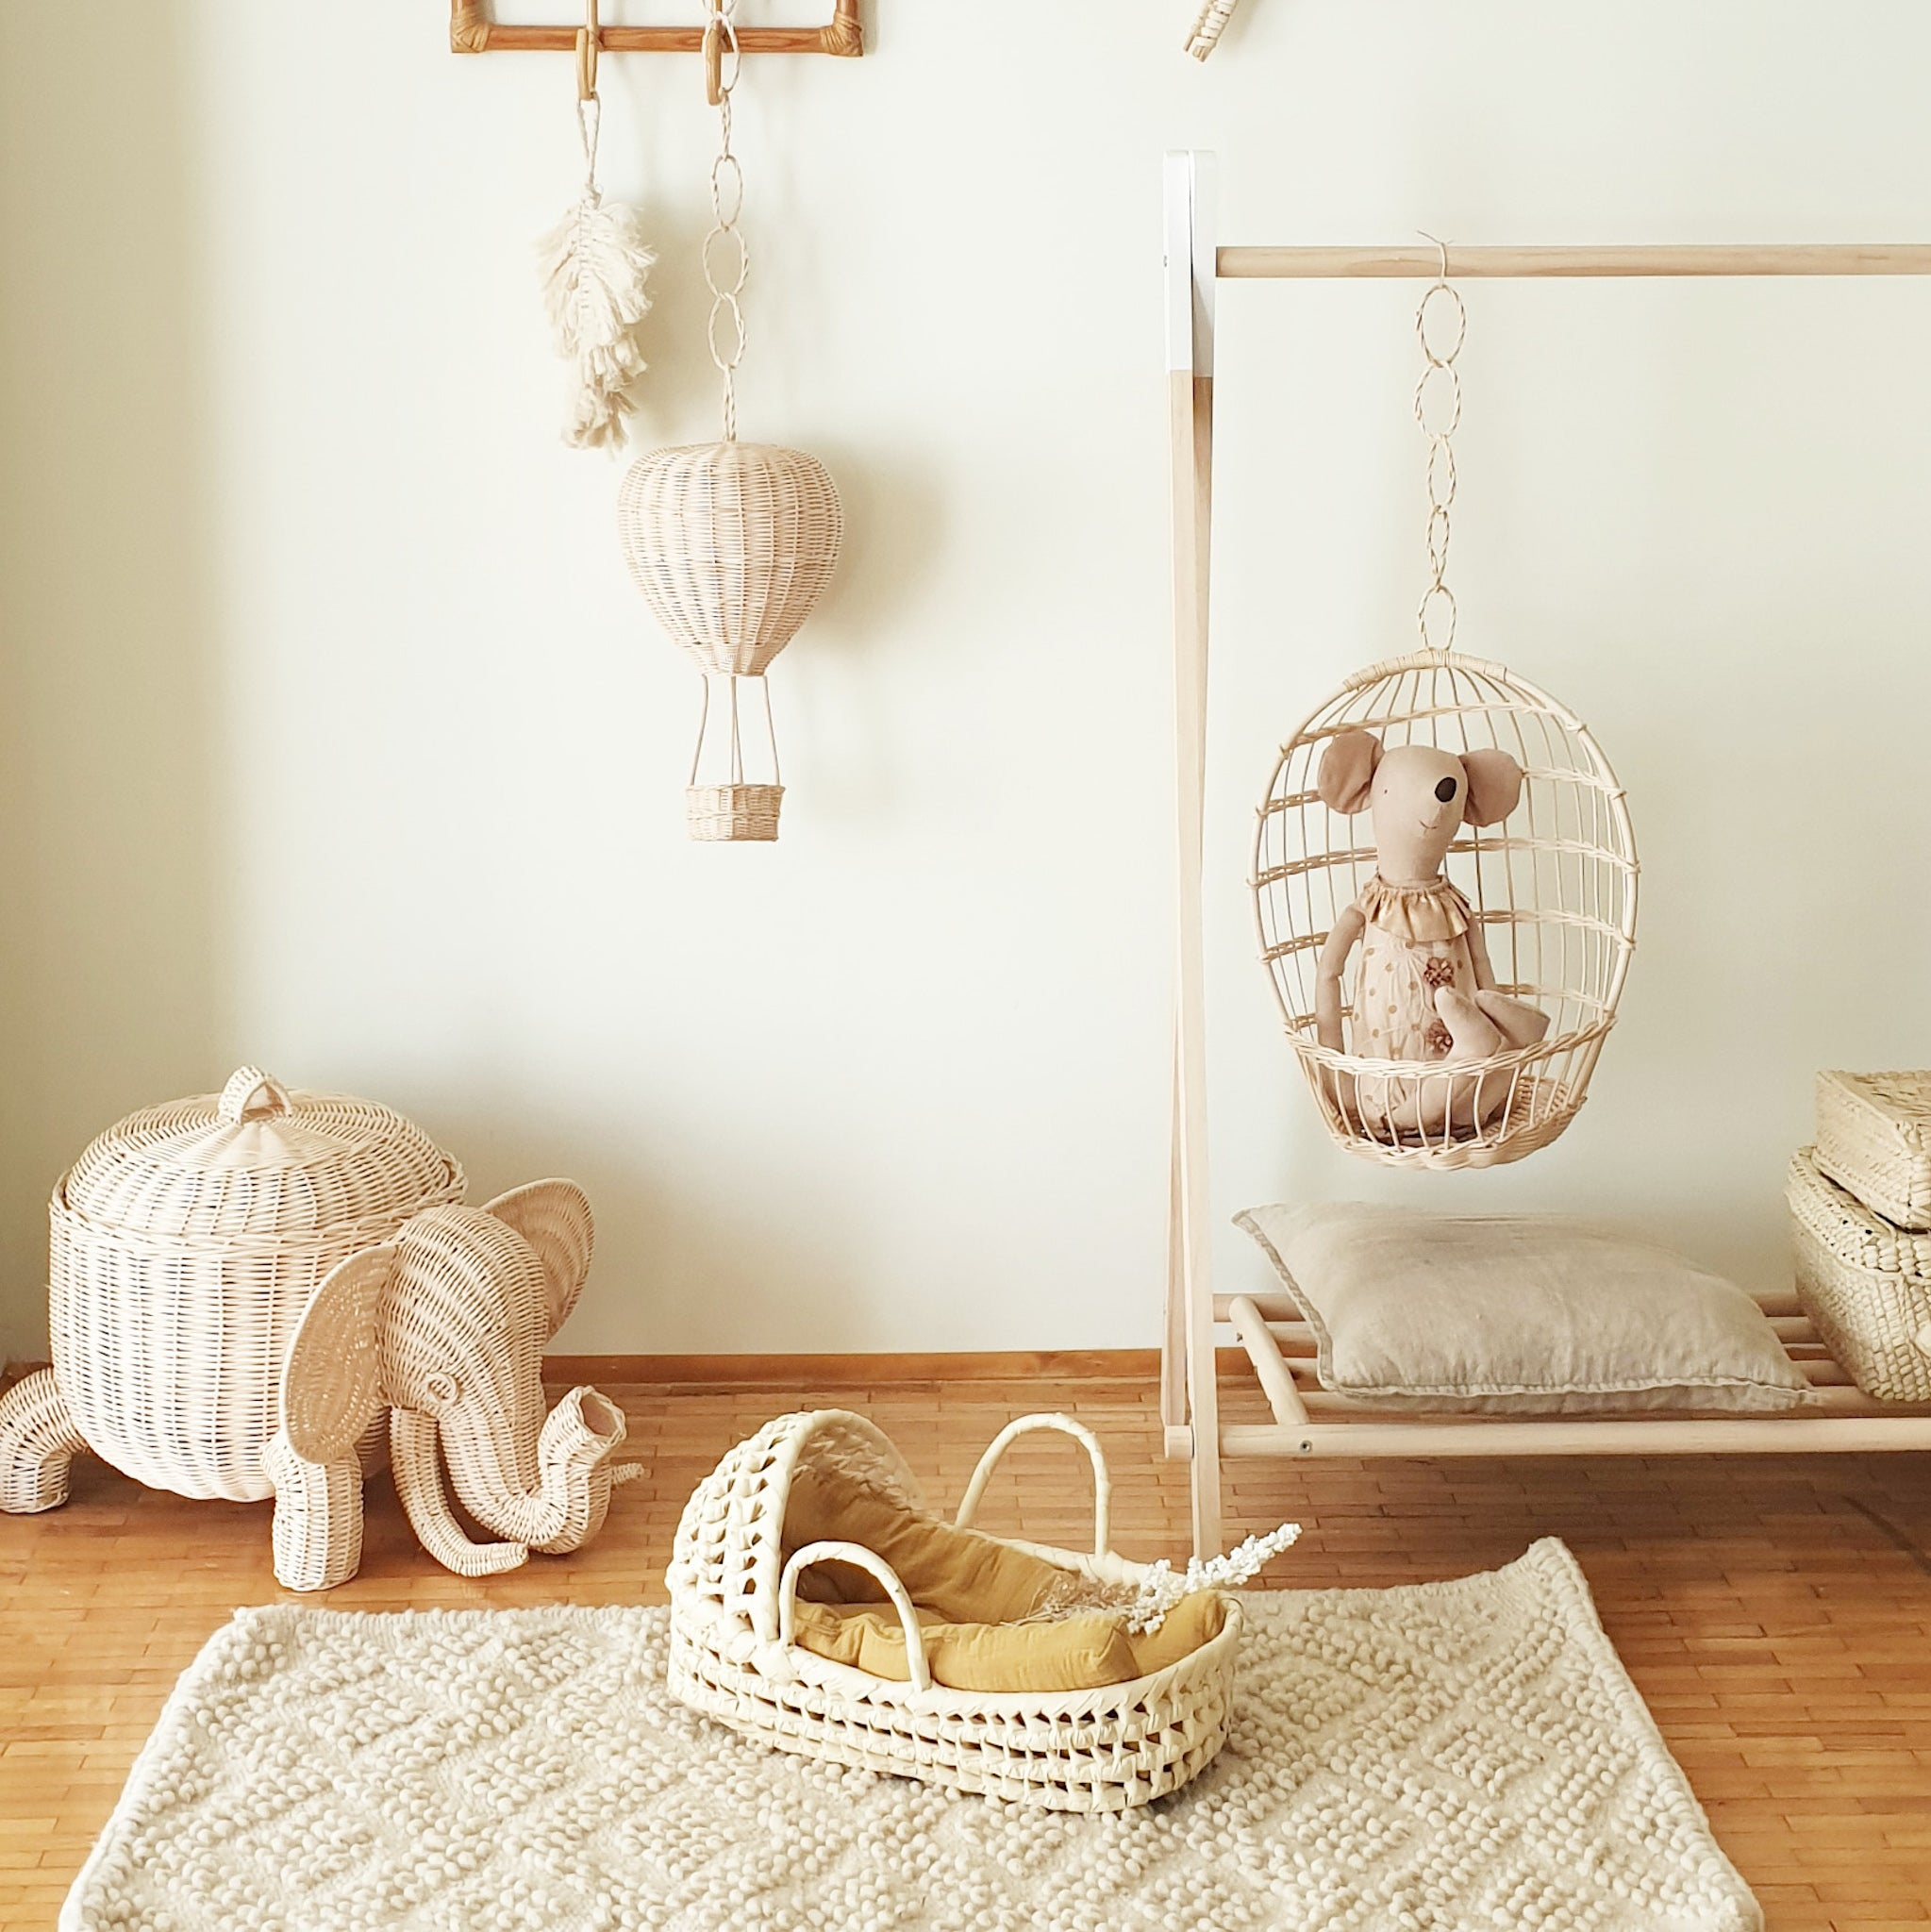 wicker and rattan kidsroom decoration